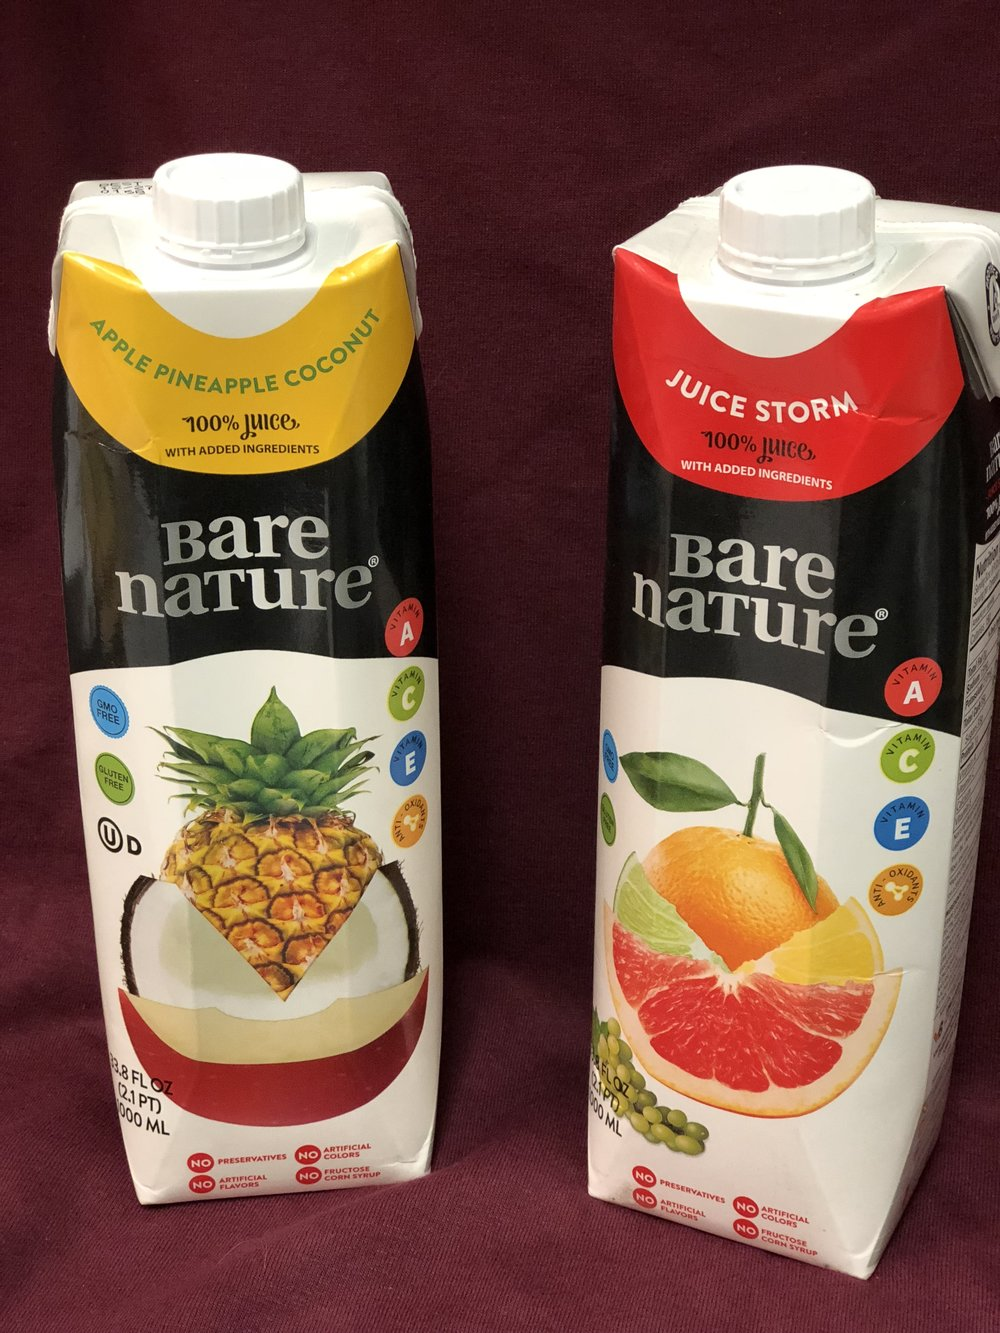 Bare Nature Juices